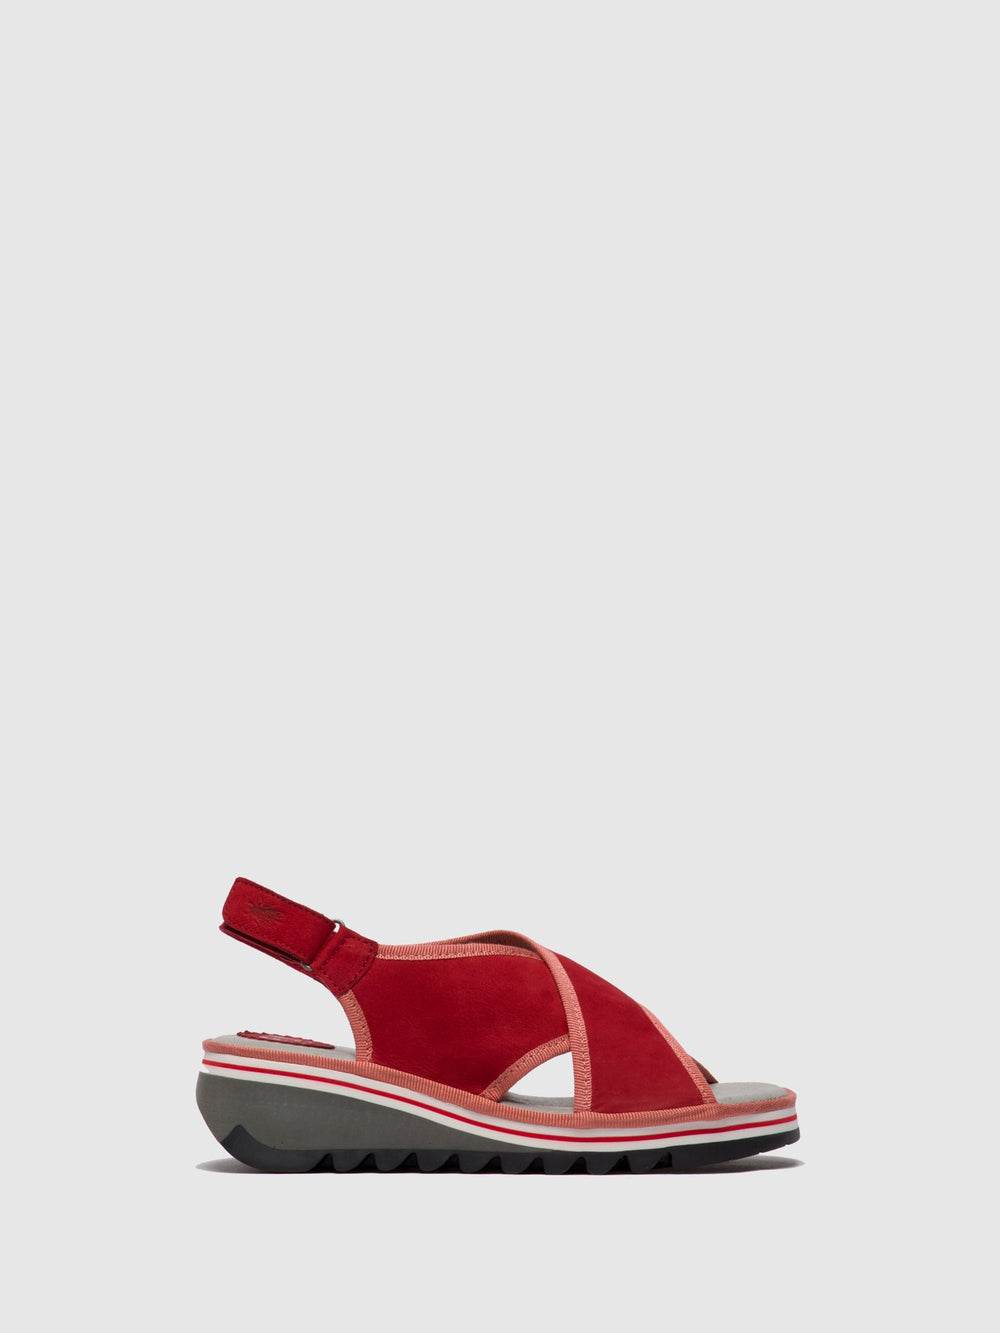 Crossover Sandals TANO133FLY LIPSTICK RED